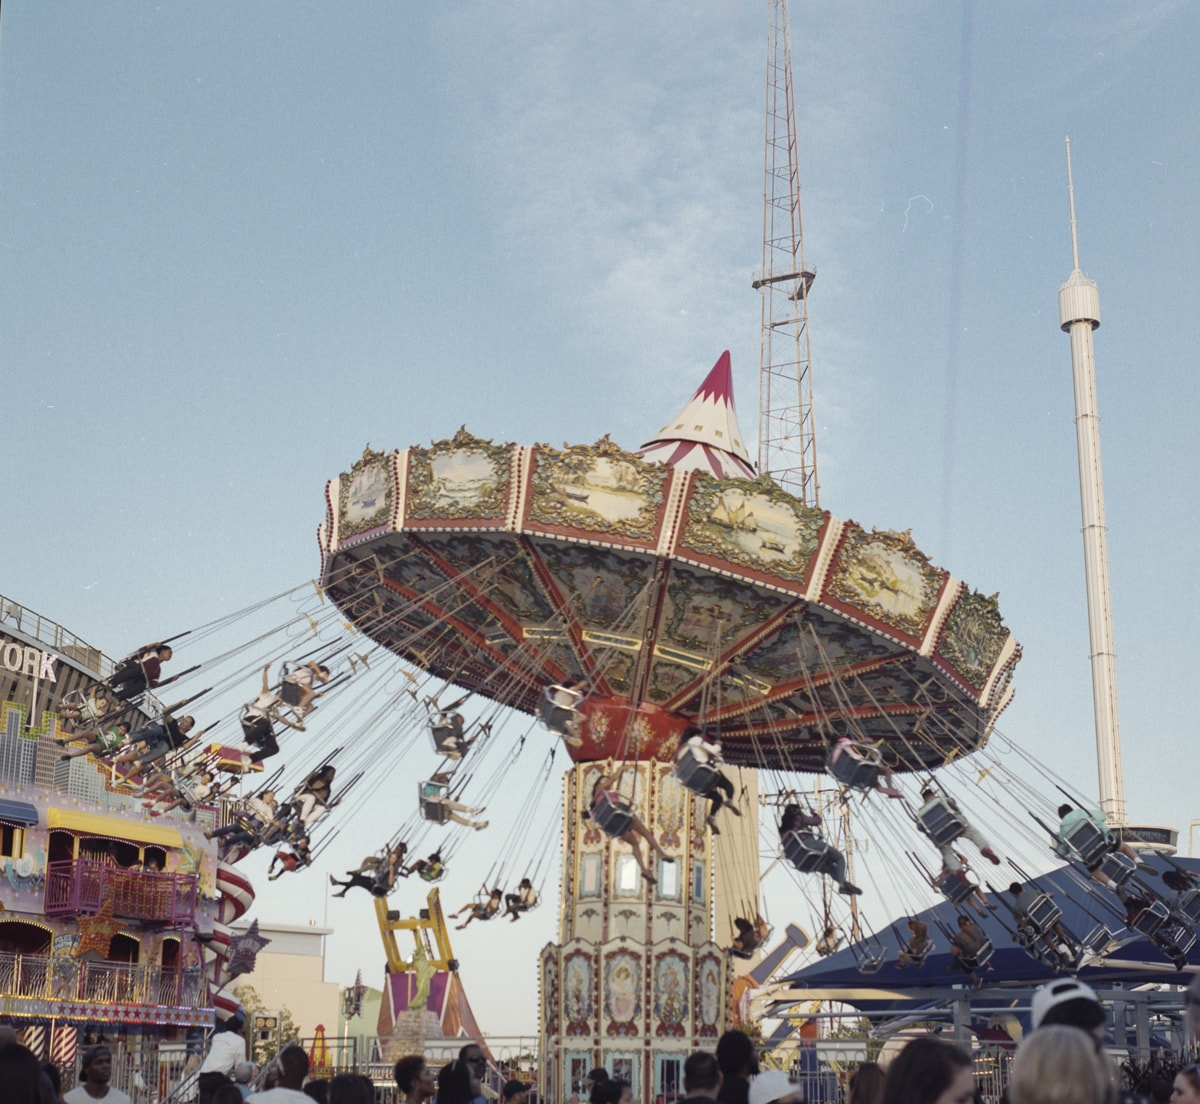 The swing ride or chair swing ride at the Texas State Fair